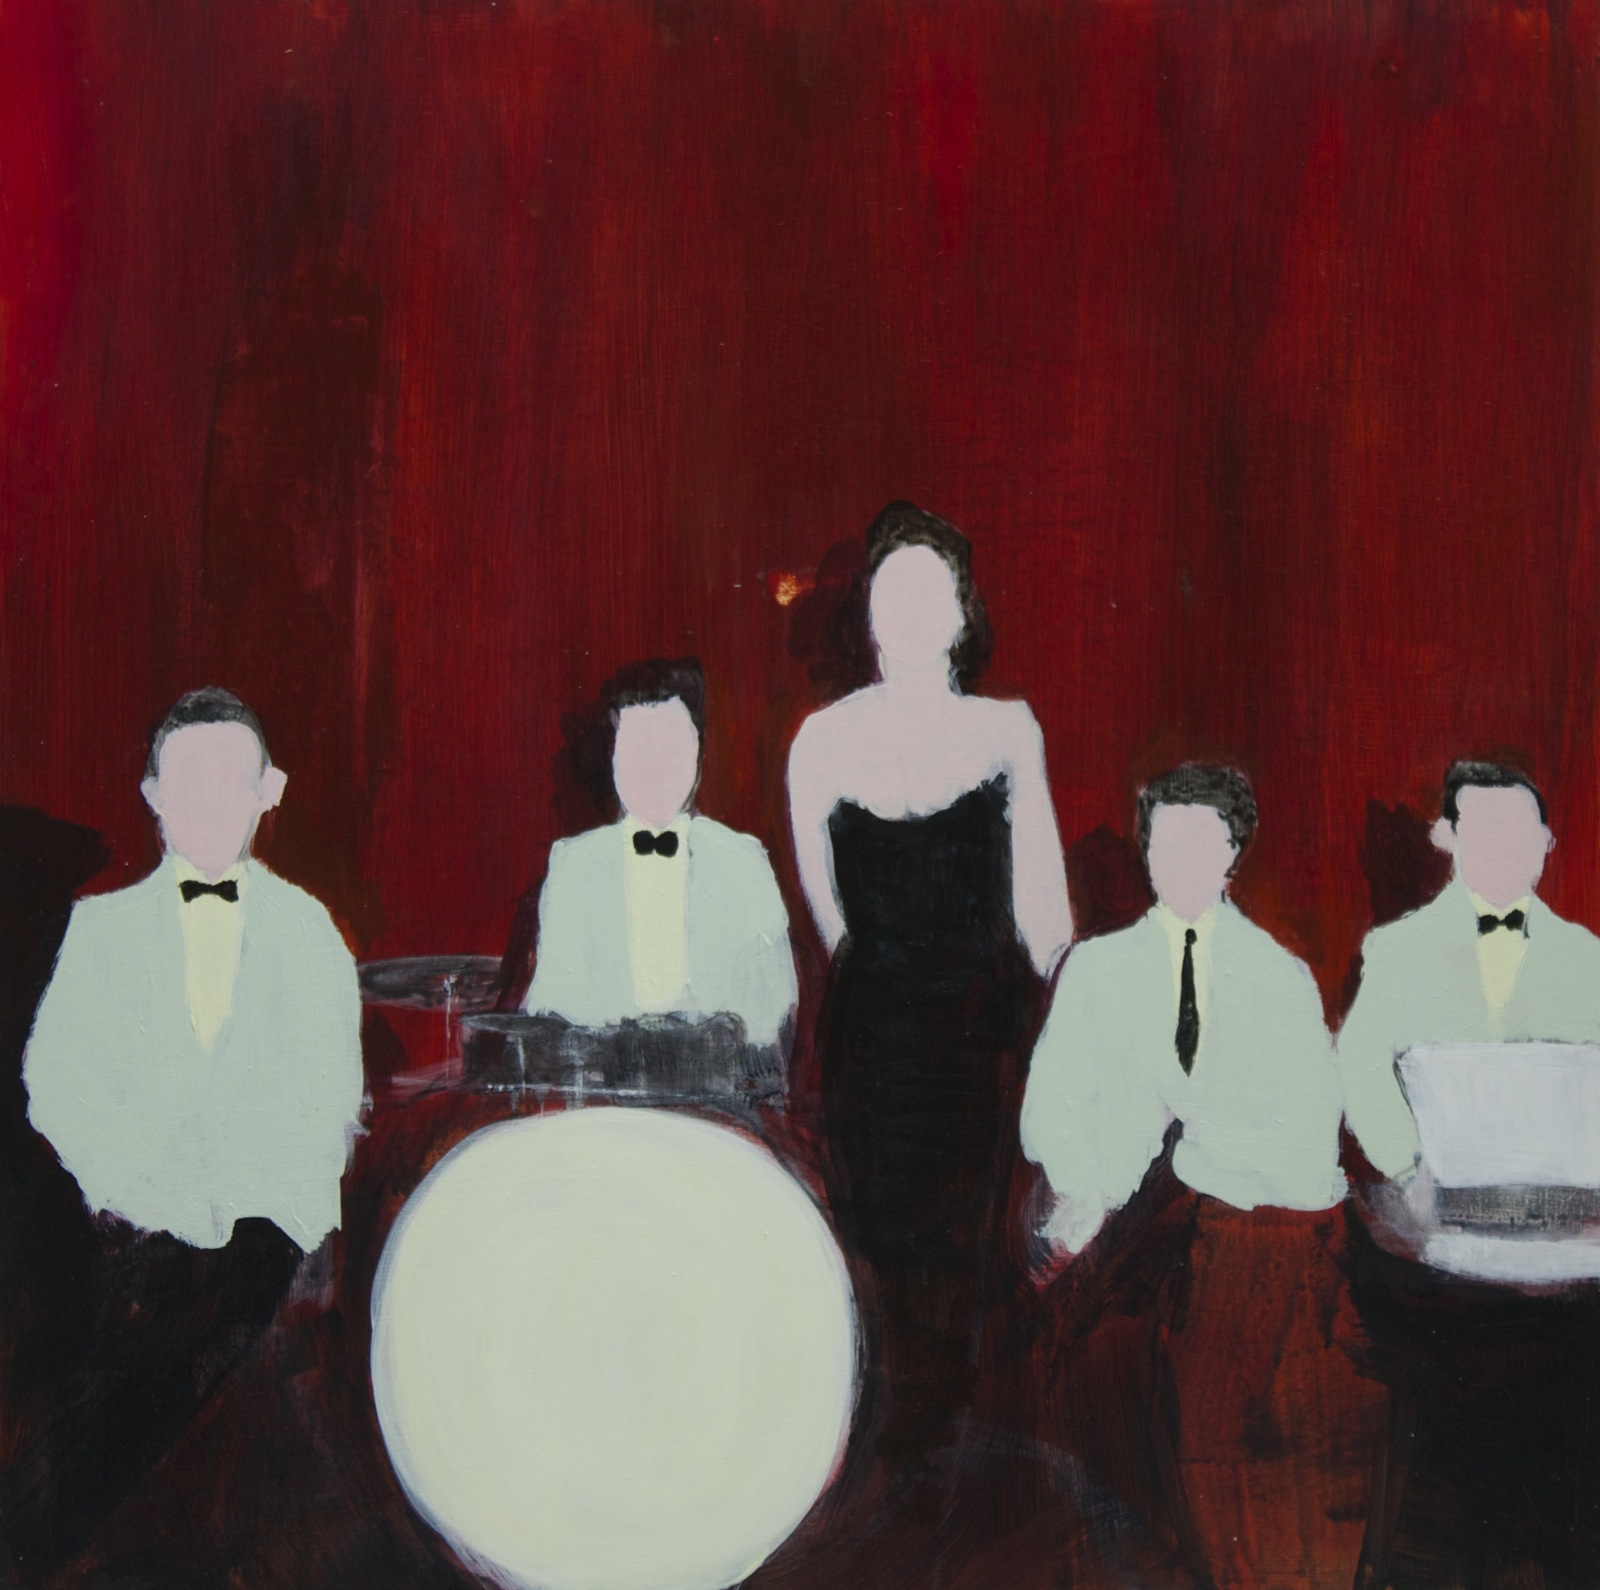 The Twilight Serenaders Dance Band, 1945, 40 cm x 40 cm, acrylic on MDF, 2019